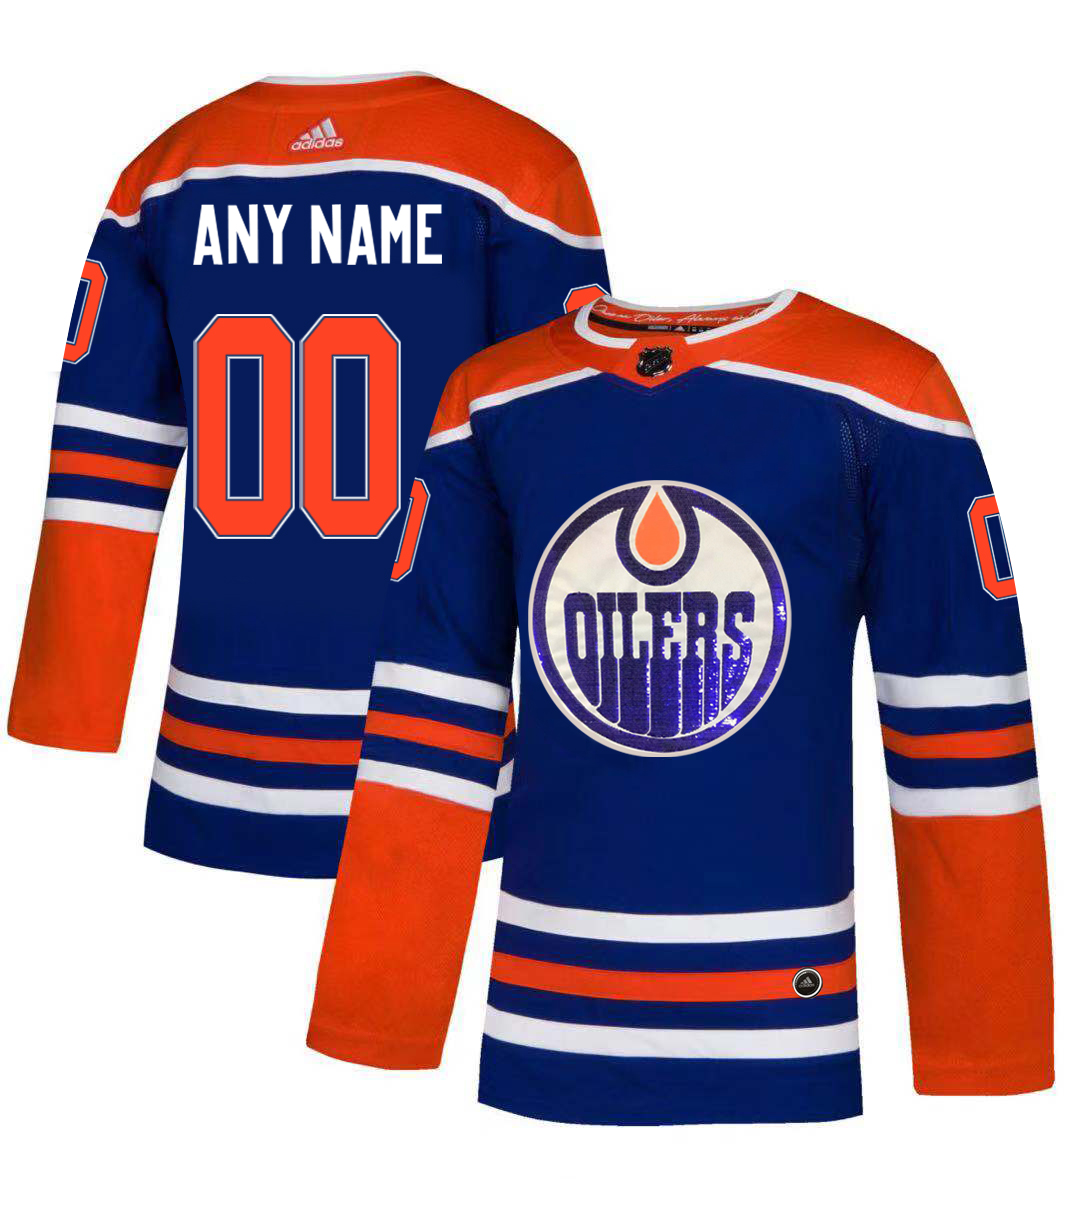 Oilers Blue Men's Customized Glittery Edition Adidas Jersey